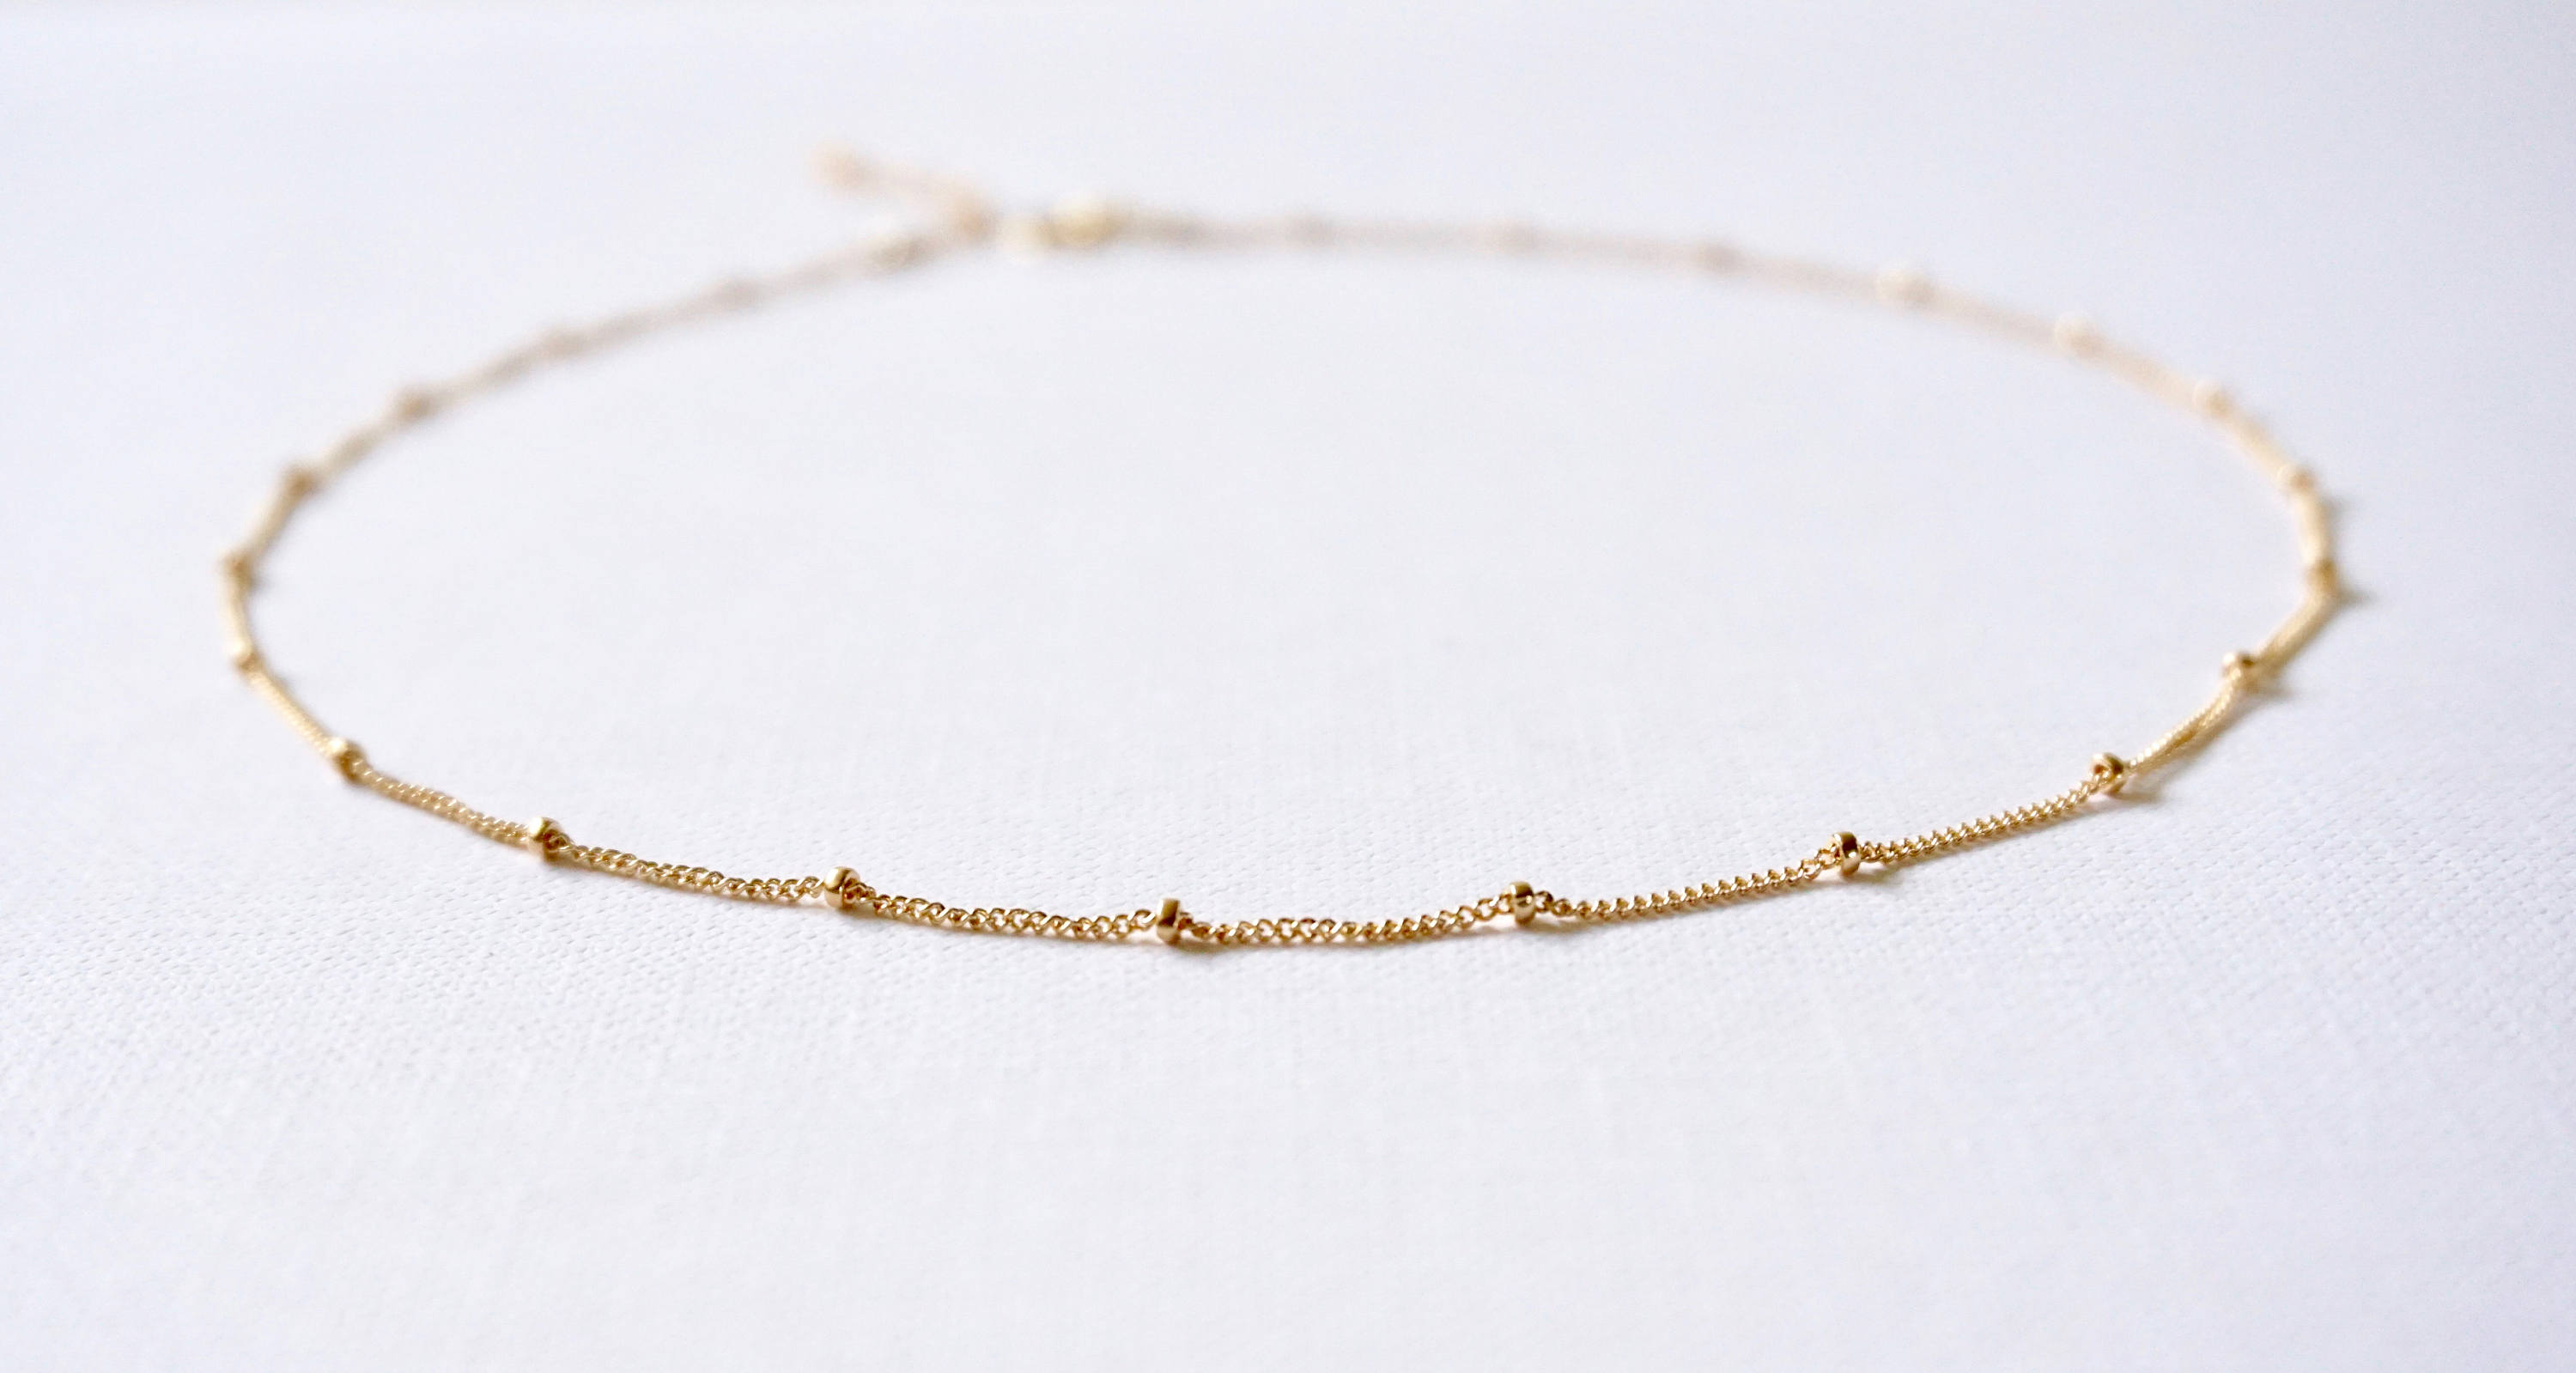 Beaded Chain Necklace, Beaded Chain Choker, Gold Filled Beaded Satellite  Chain, Sterling Silver Satellite Chain, Rose Gold Beaded Chain For 2020 Beaded Chain Necklaces (View 9 of 25)